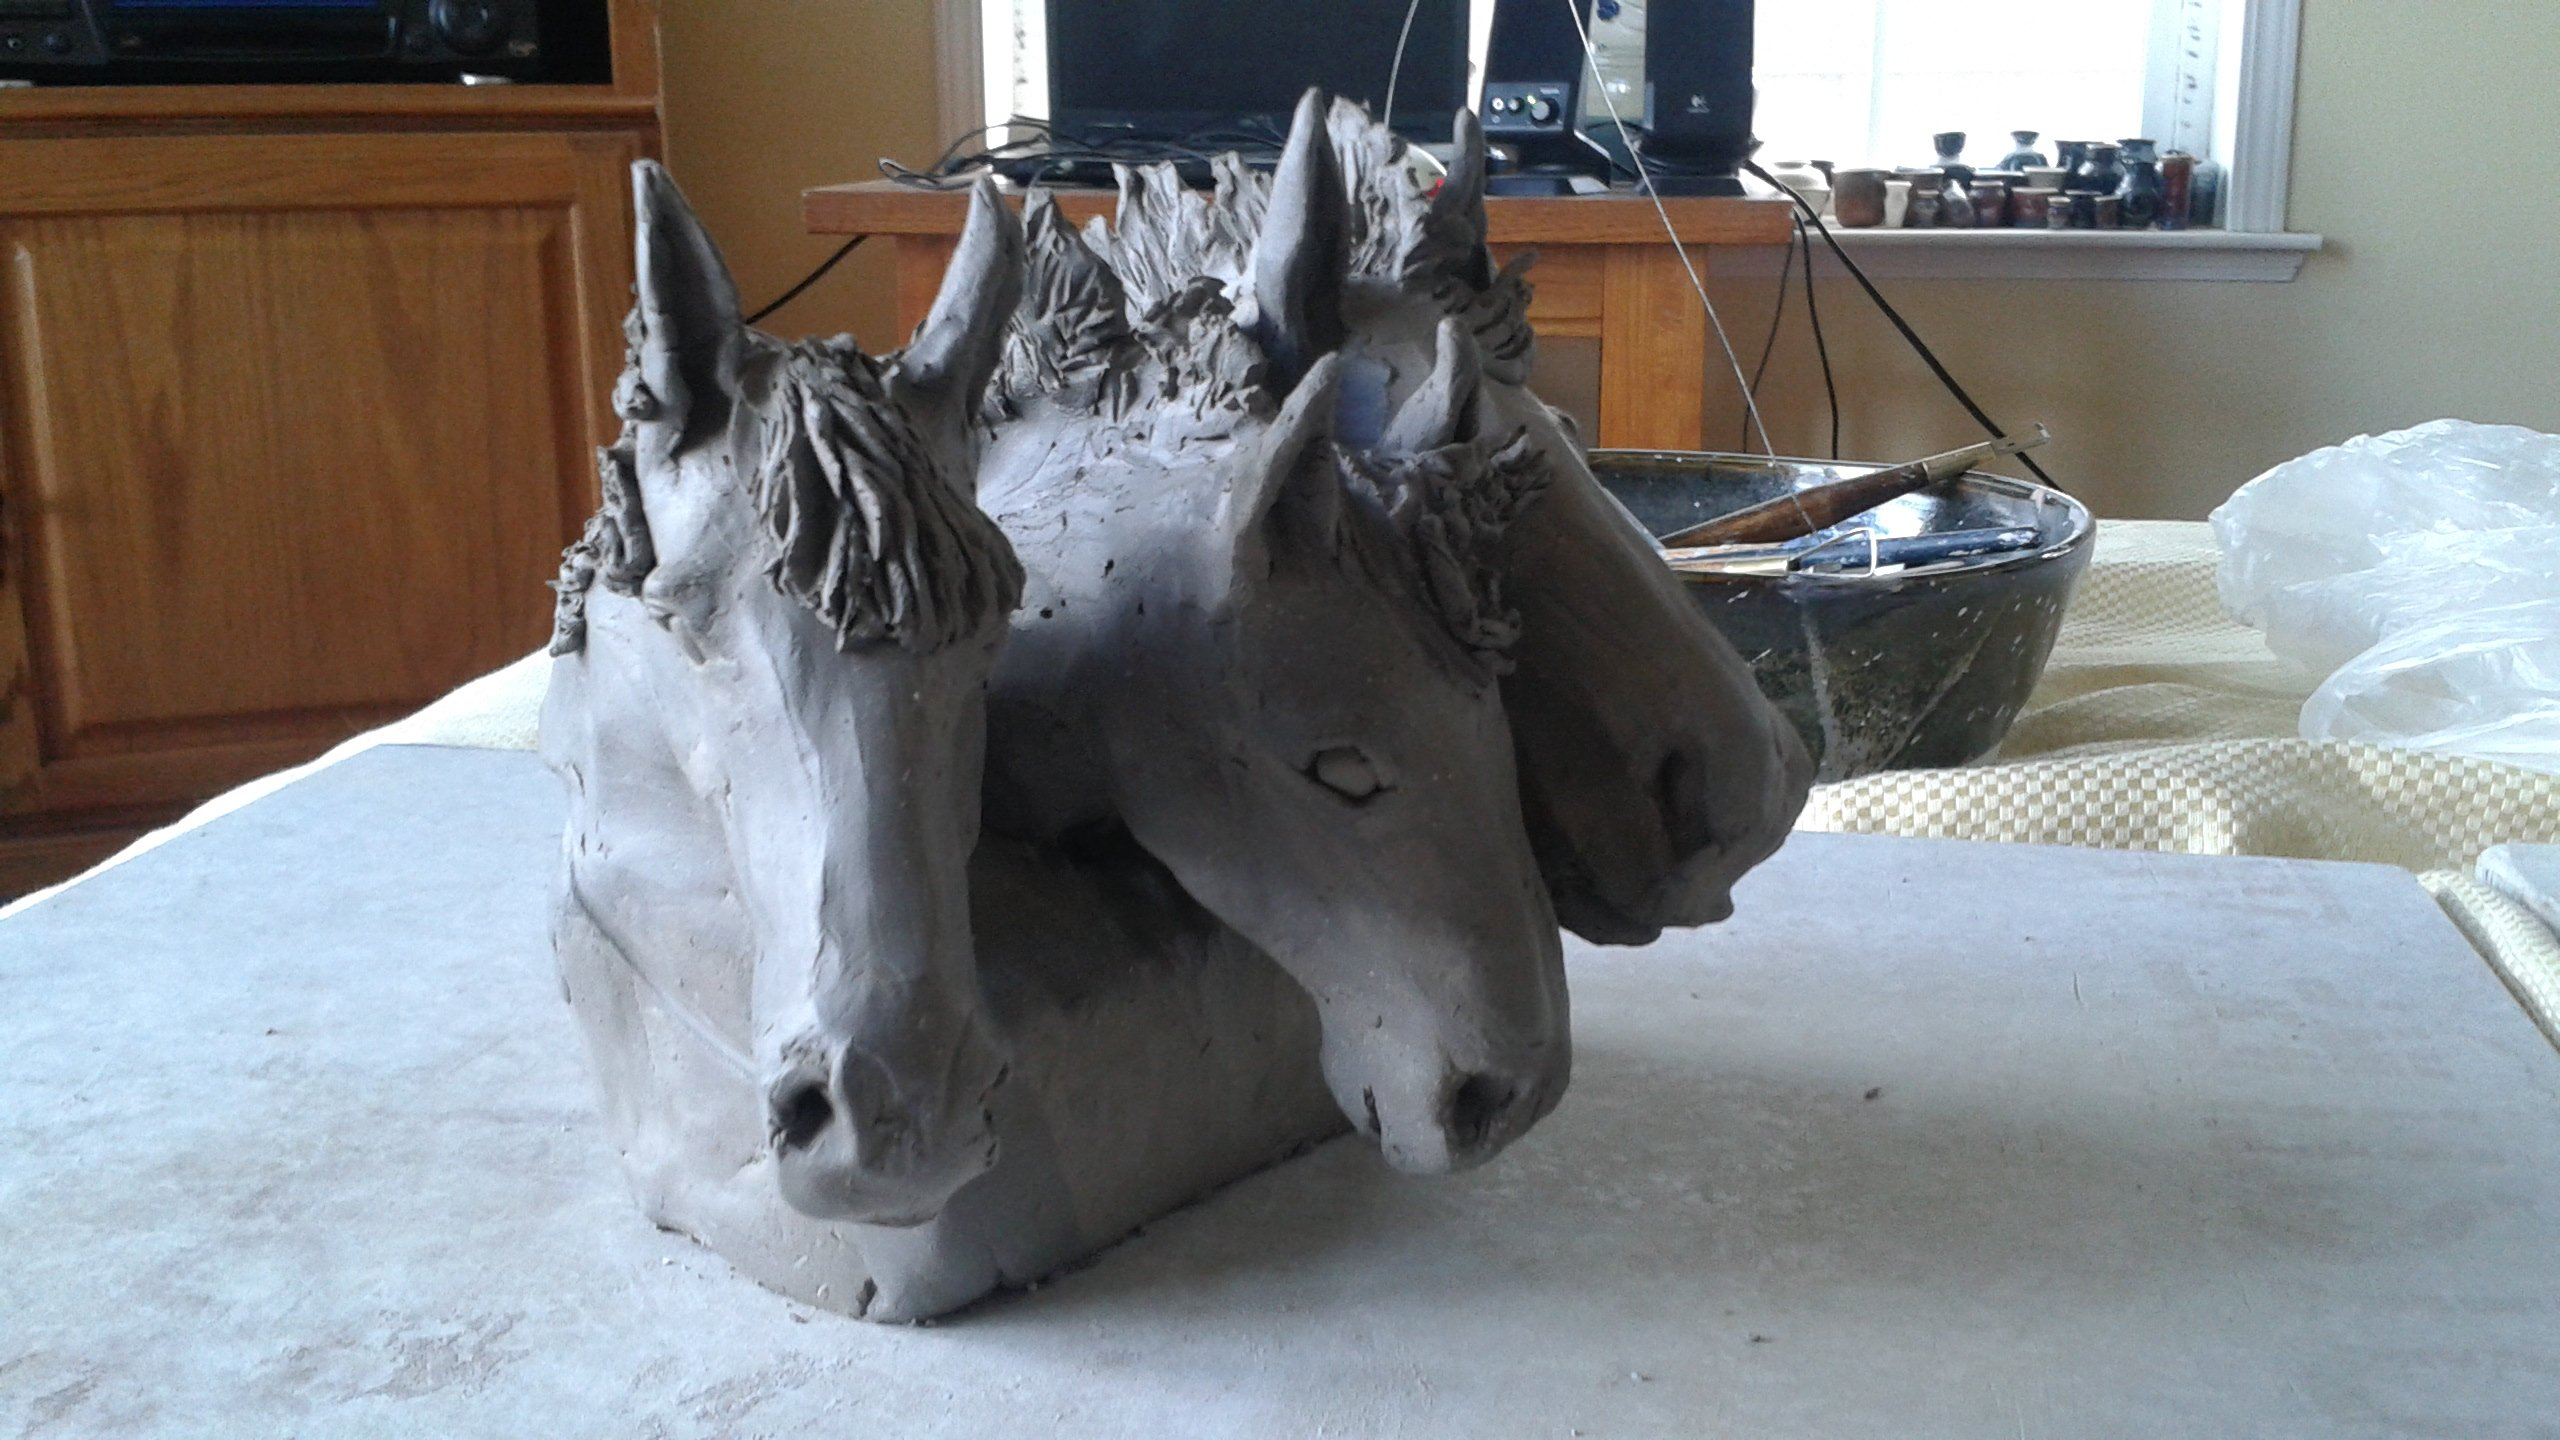 Horse and livestock clay sculpture-3sisters3.jpg